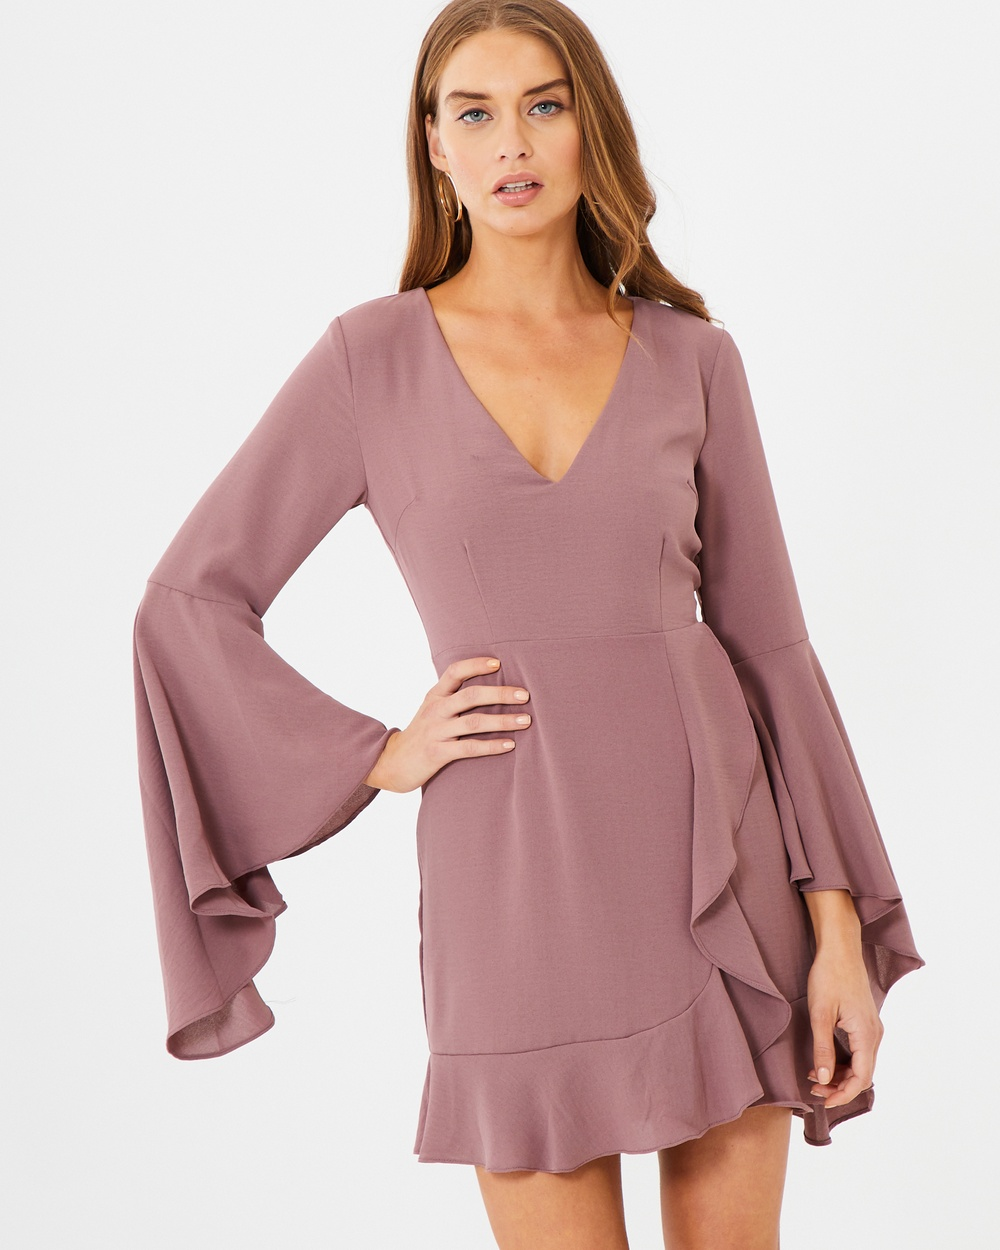 Tussah Britt Bell Sleeve Dress Dresses Damson Britt Bell Sleeve Dress